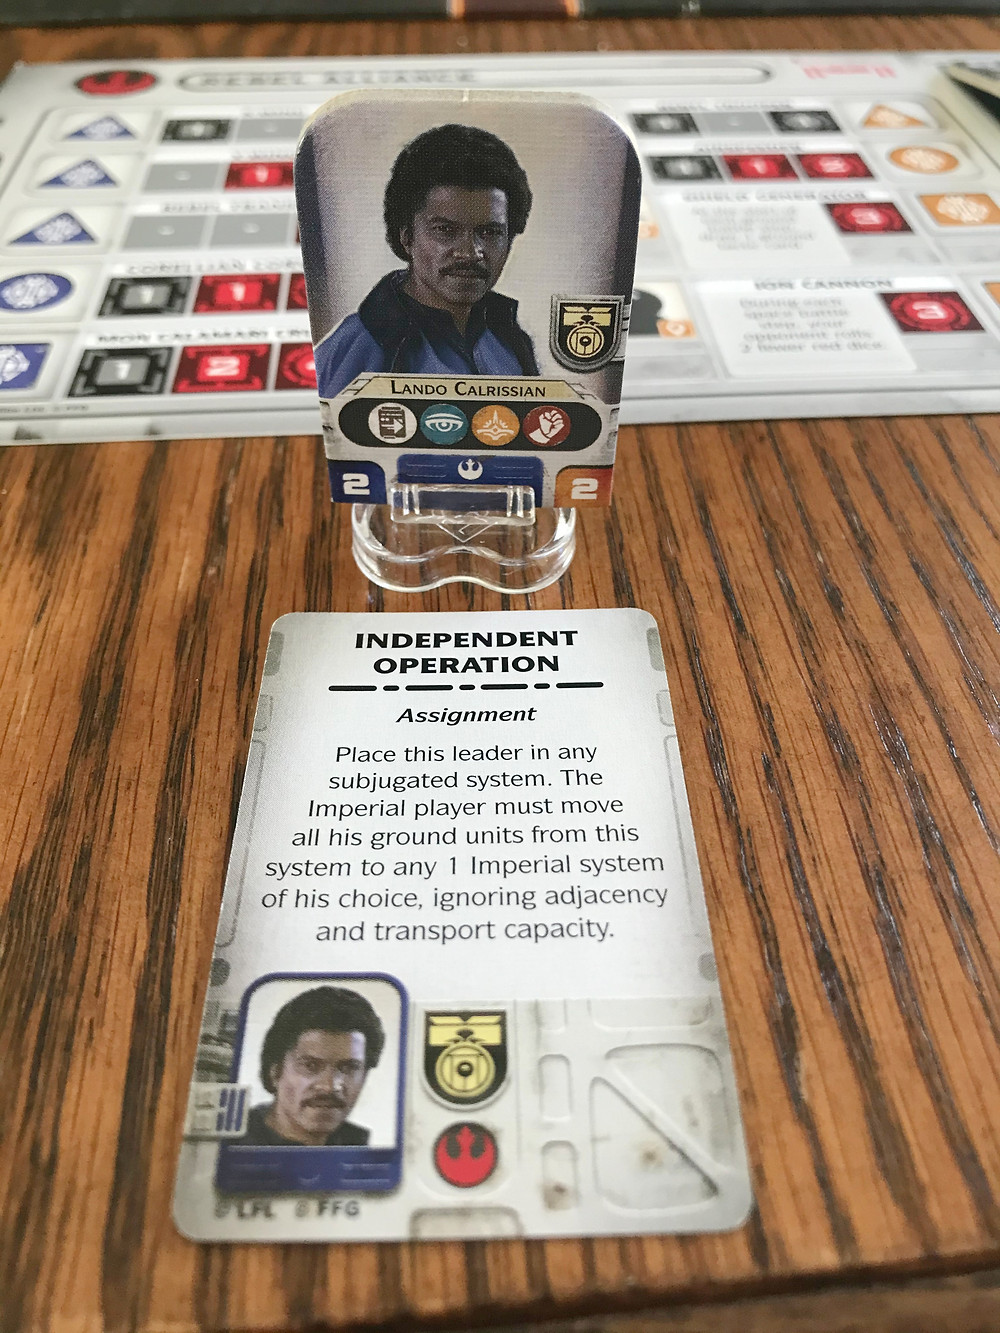 Lando's a jack-of-all trades, just look at those skill icons! He can do literally anything!